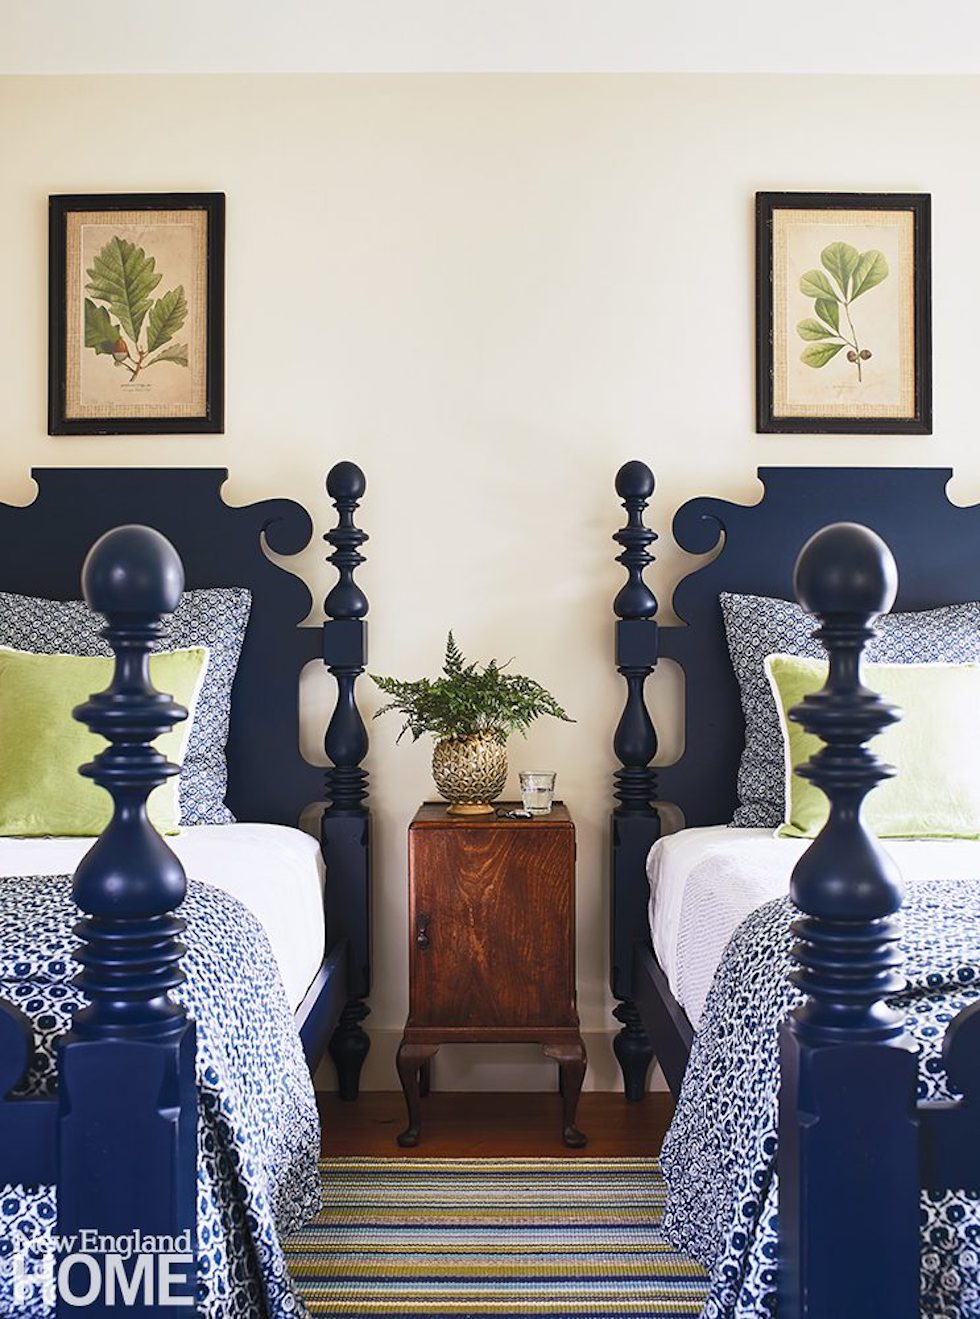 Inspired by: A Cozy Home on Martha's Vineyard Island